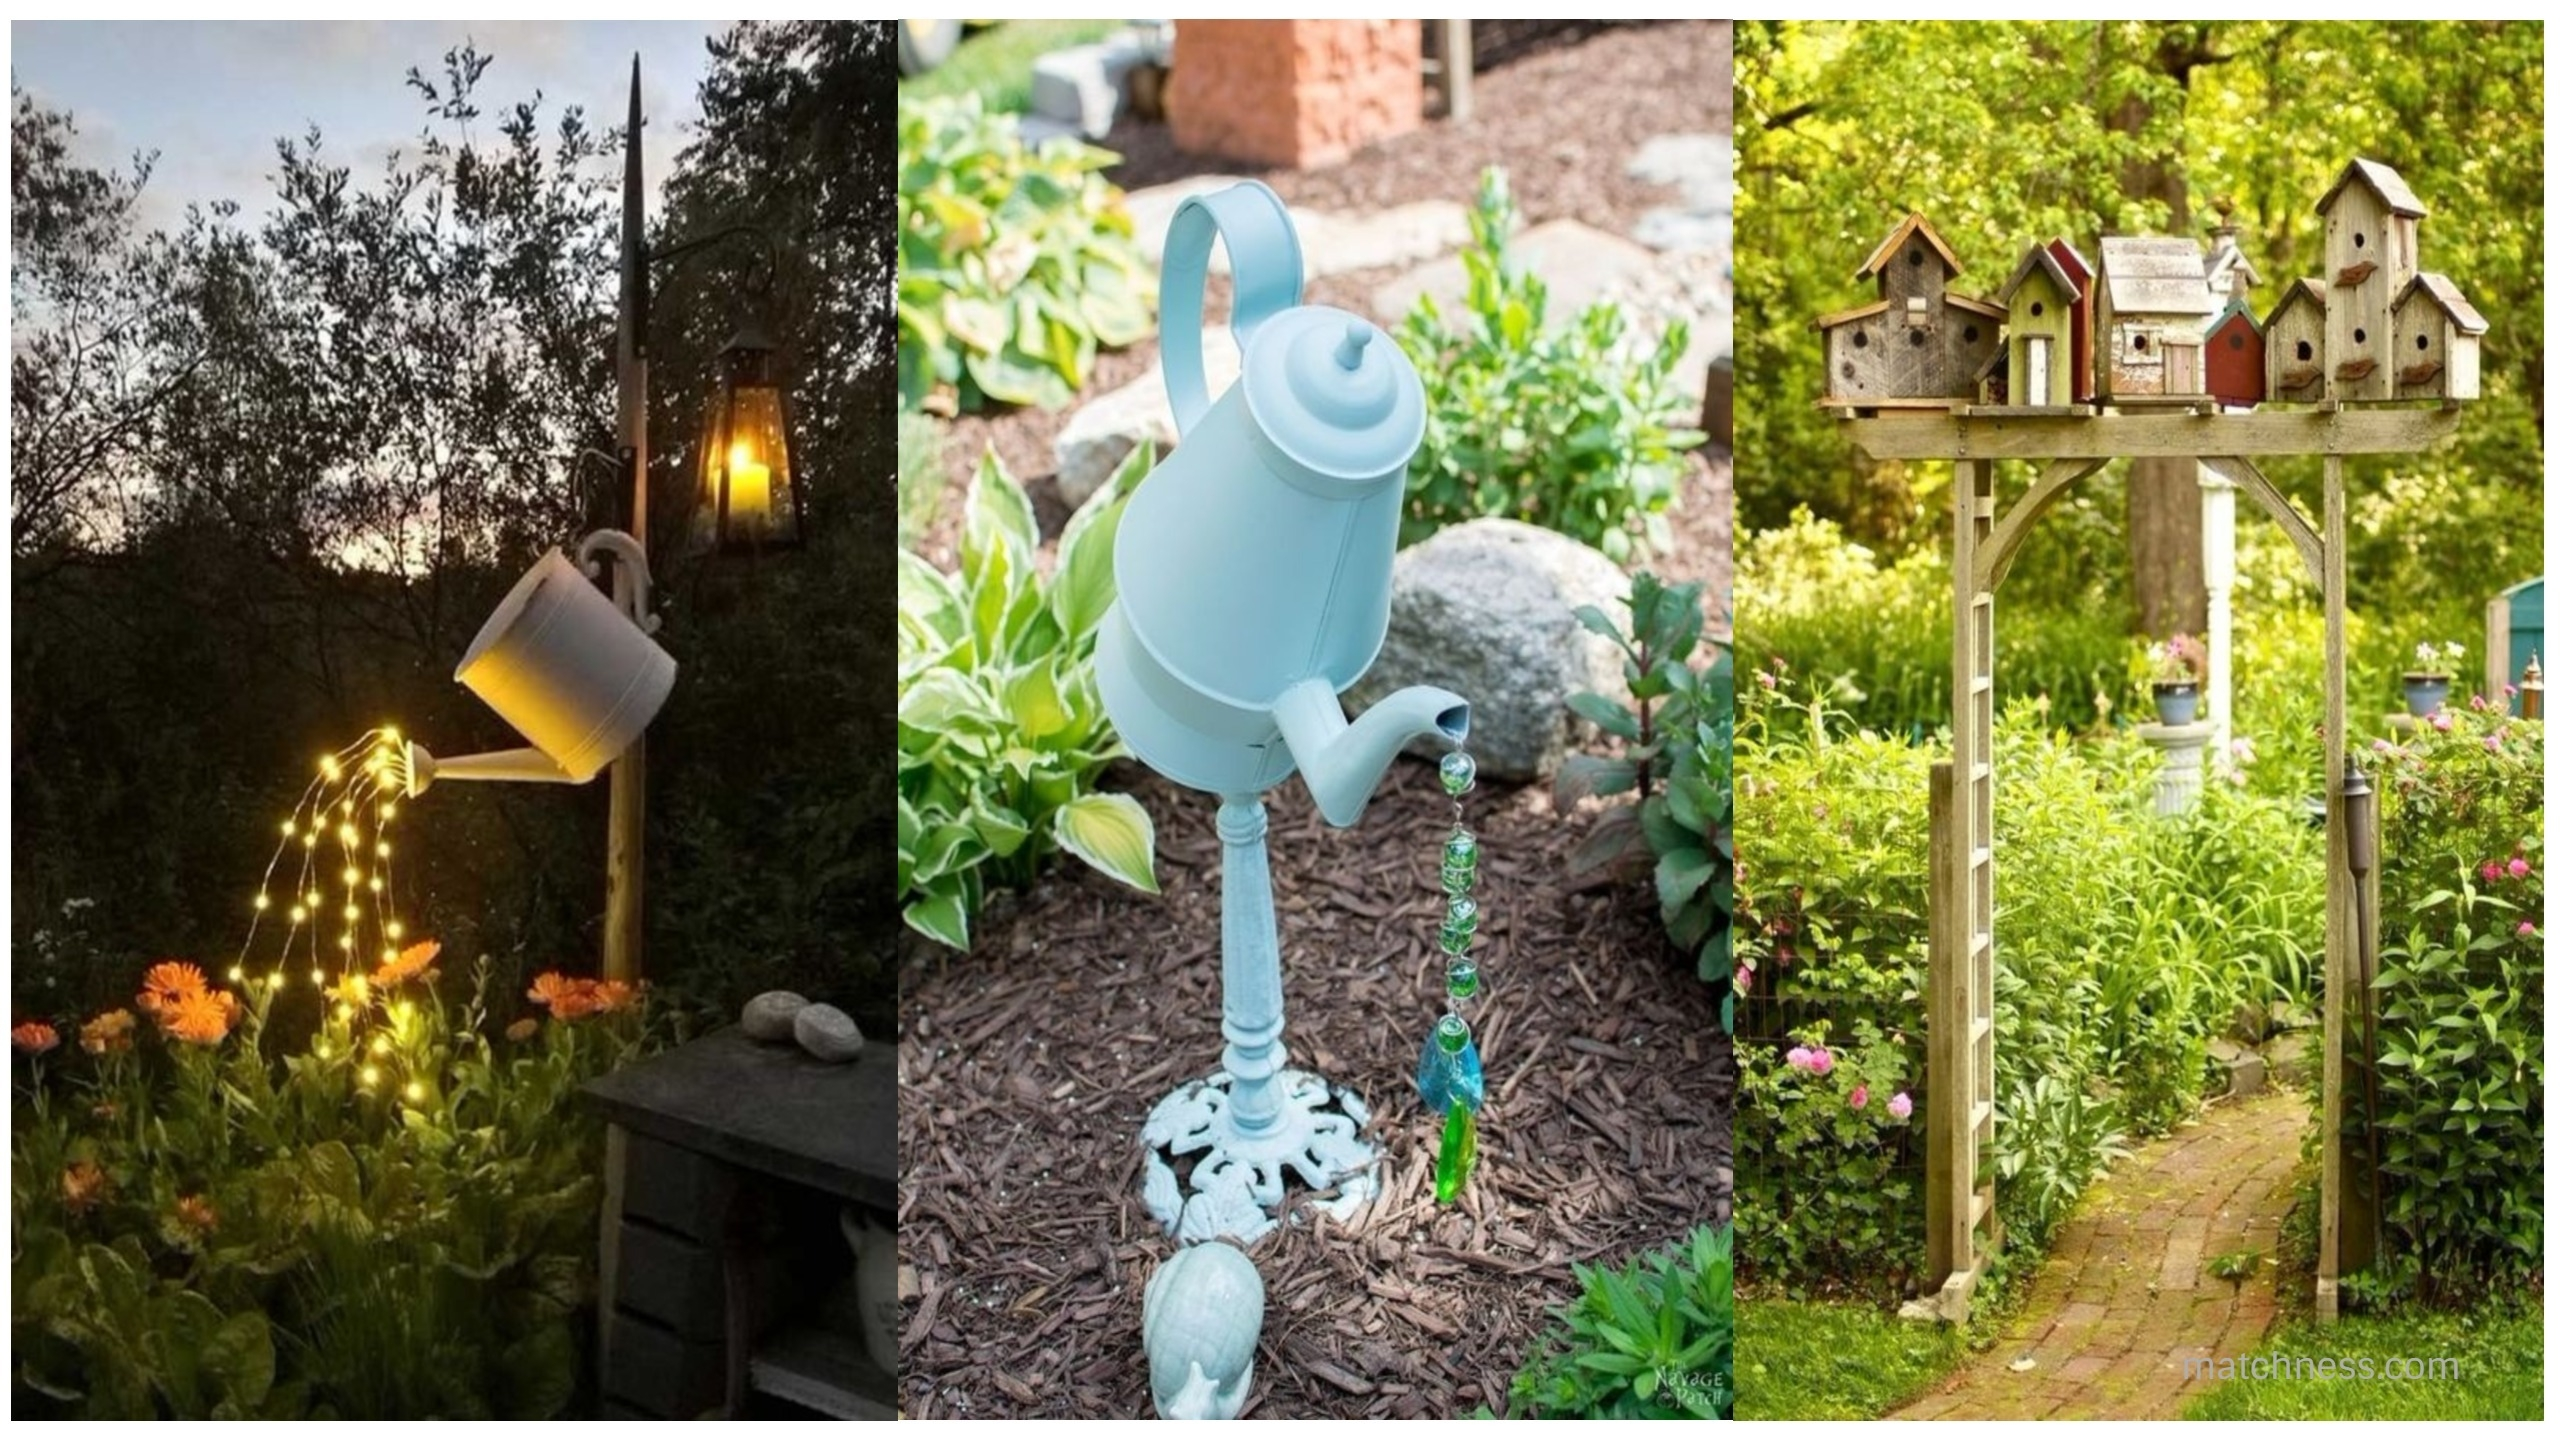 15 DIY Lovely Garden Decor Ideas You Will Love - Matchness.com on Easy Diy Garden Decor id=73009